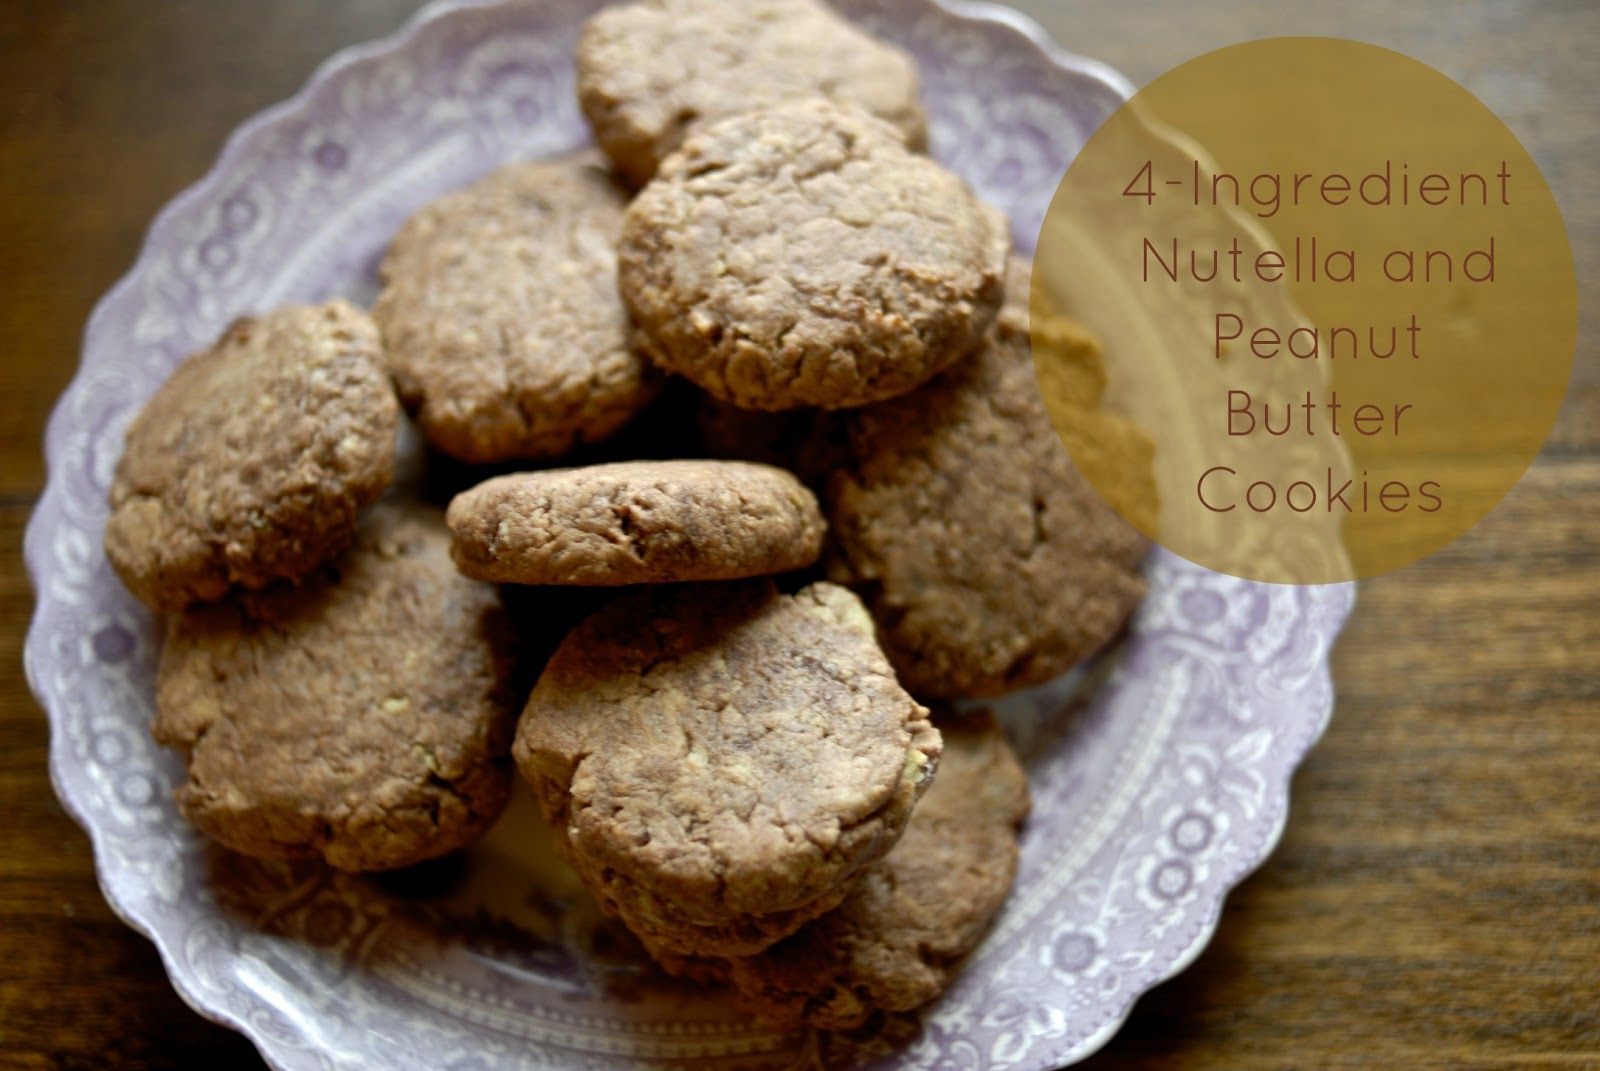 Home for Hire: 4-Ingredient Nutella and Peanut Butter Cookies